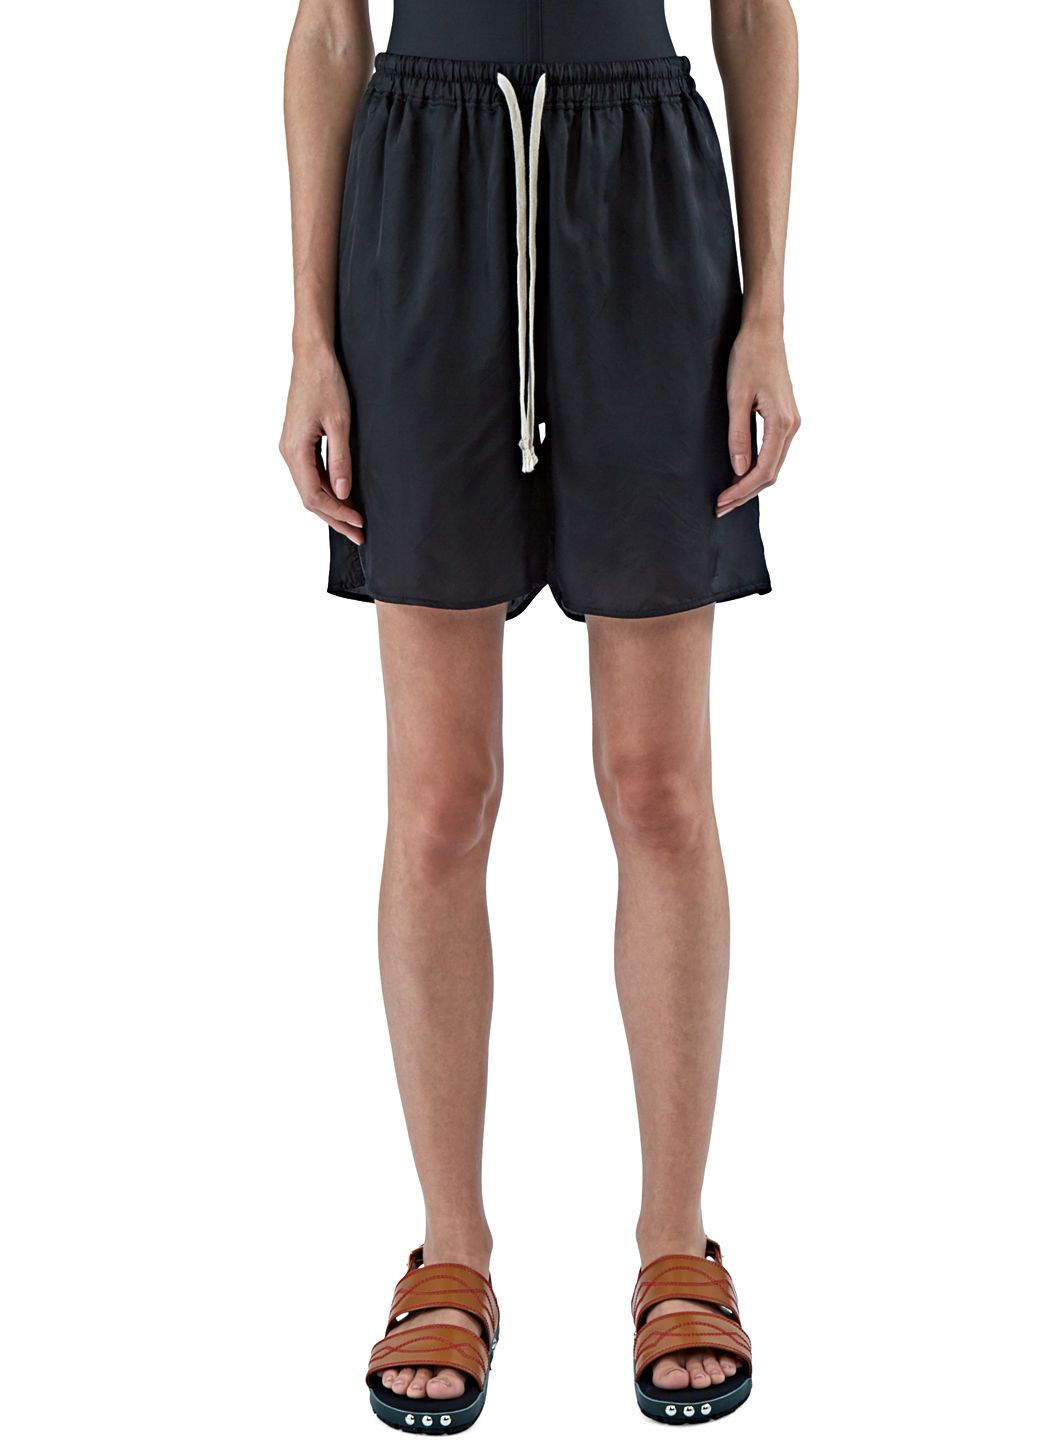 RICK OWENS Women S Satin Boxer Shorts In Black.  rickowens  cloth ... ab65697fc4